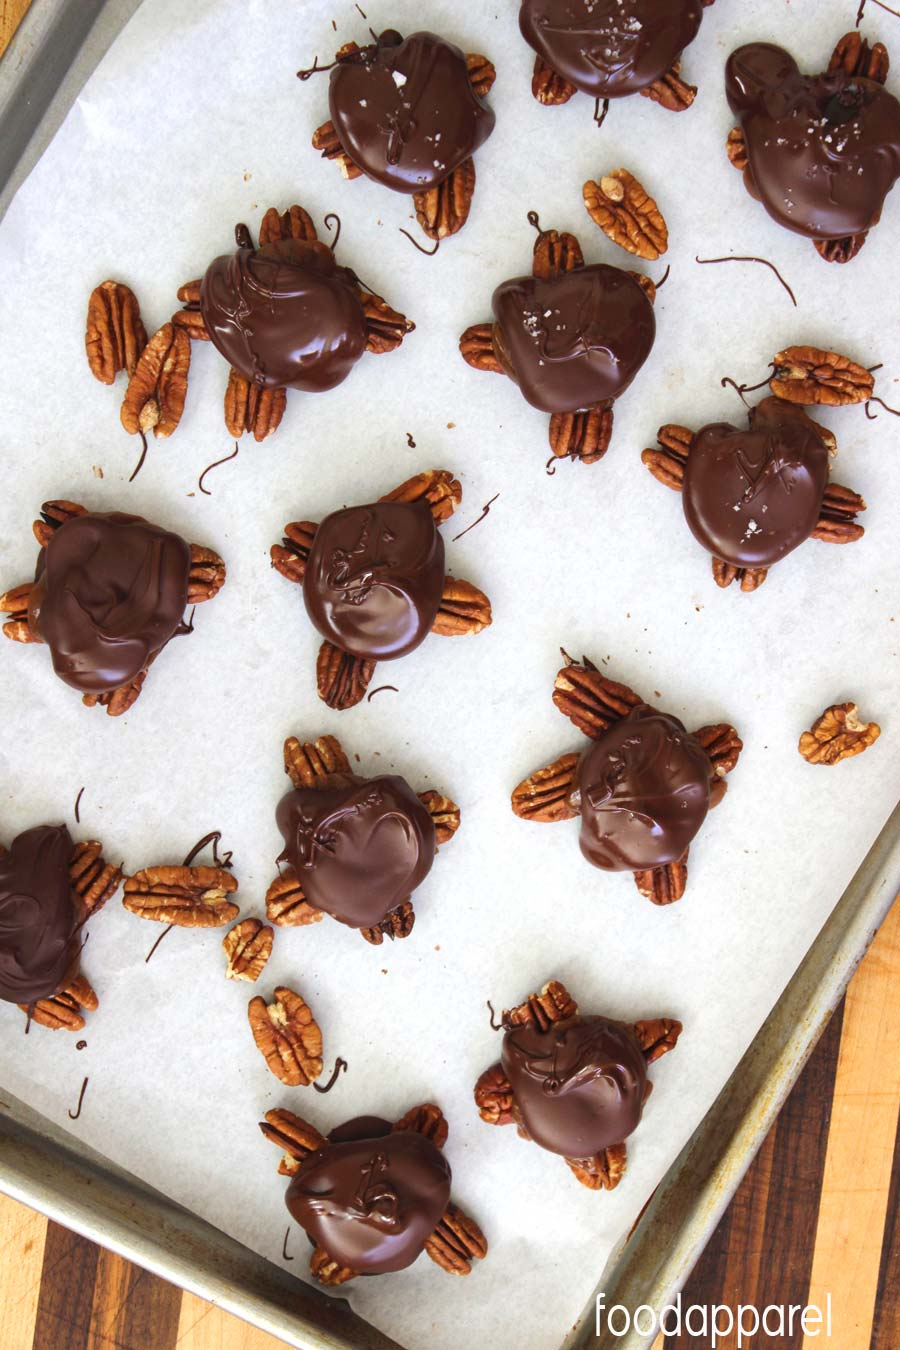 Homemade Turtles Recipe (Caramel, Pecan, and Chocolate Clusters) . Completes any chocolate box! @foodapparel